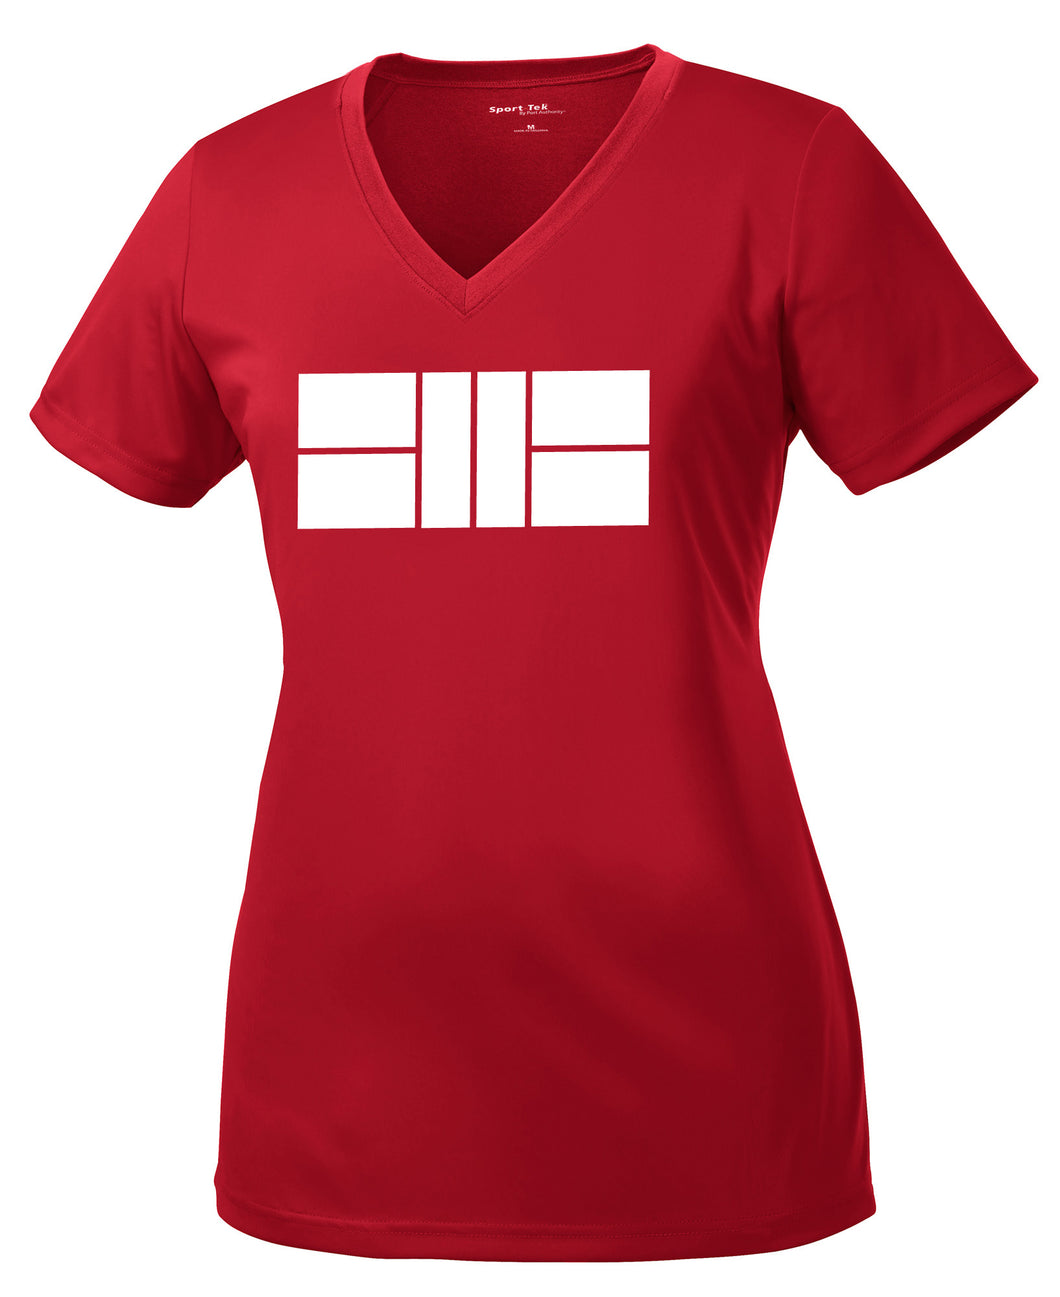 Pickleball Court - Womens Performance V Neck Tee